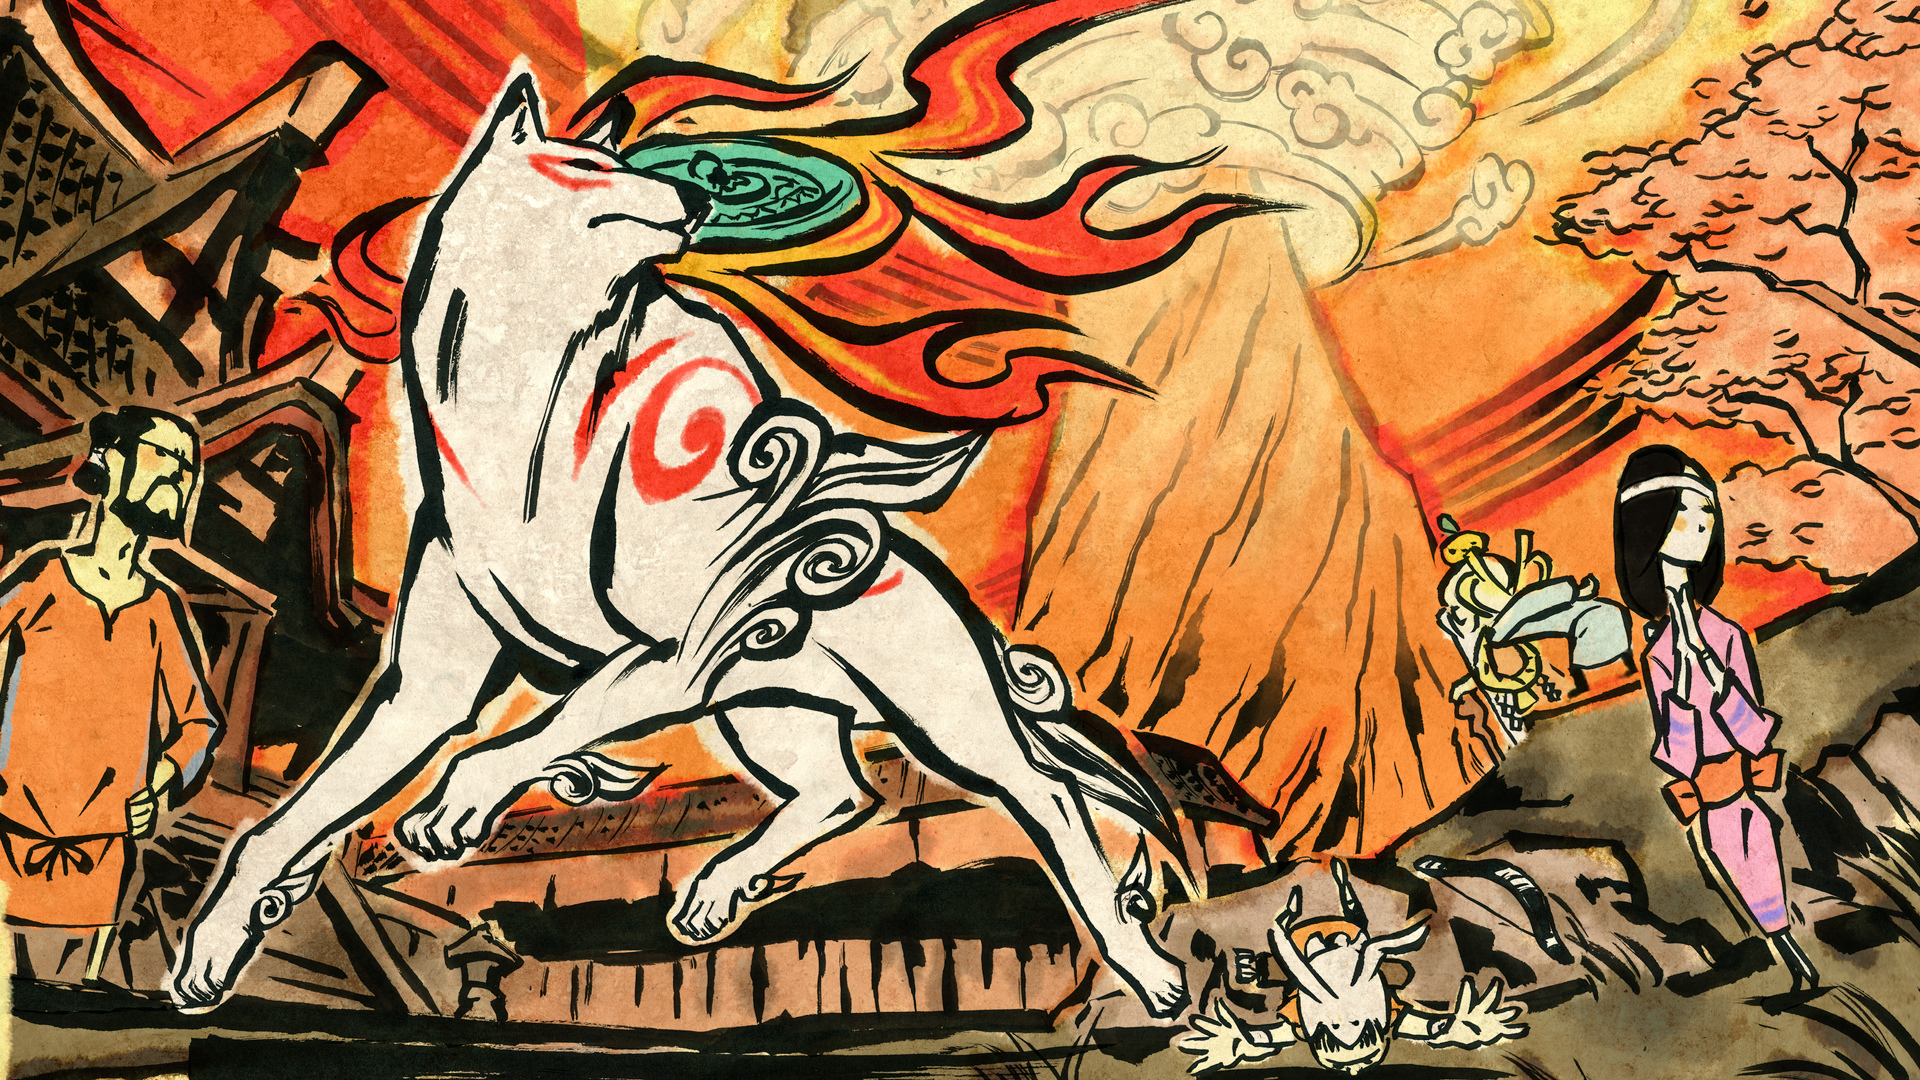 okami s amaterasu could get on dota 2 but it all depends on you